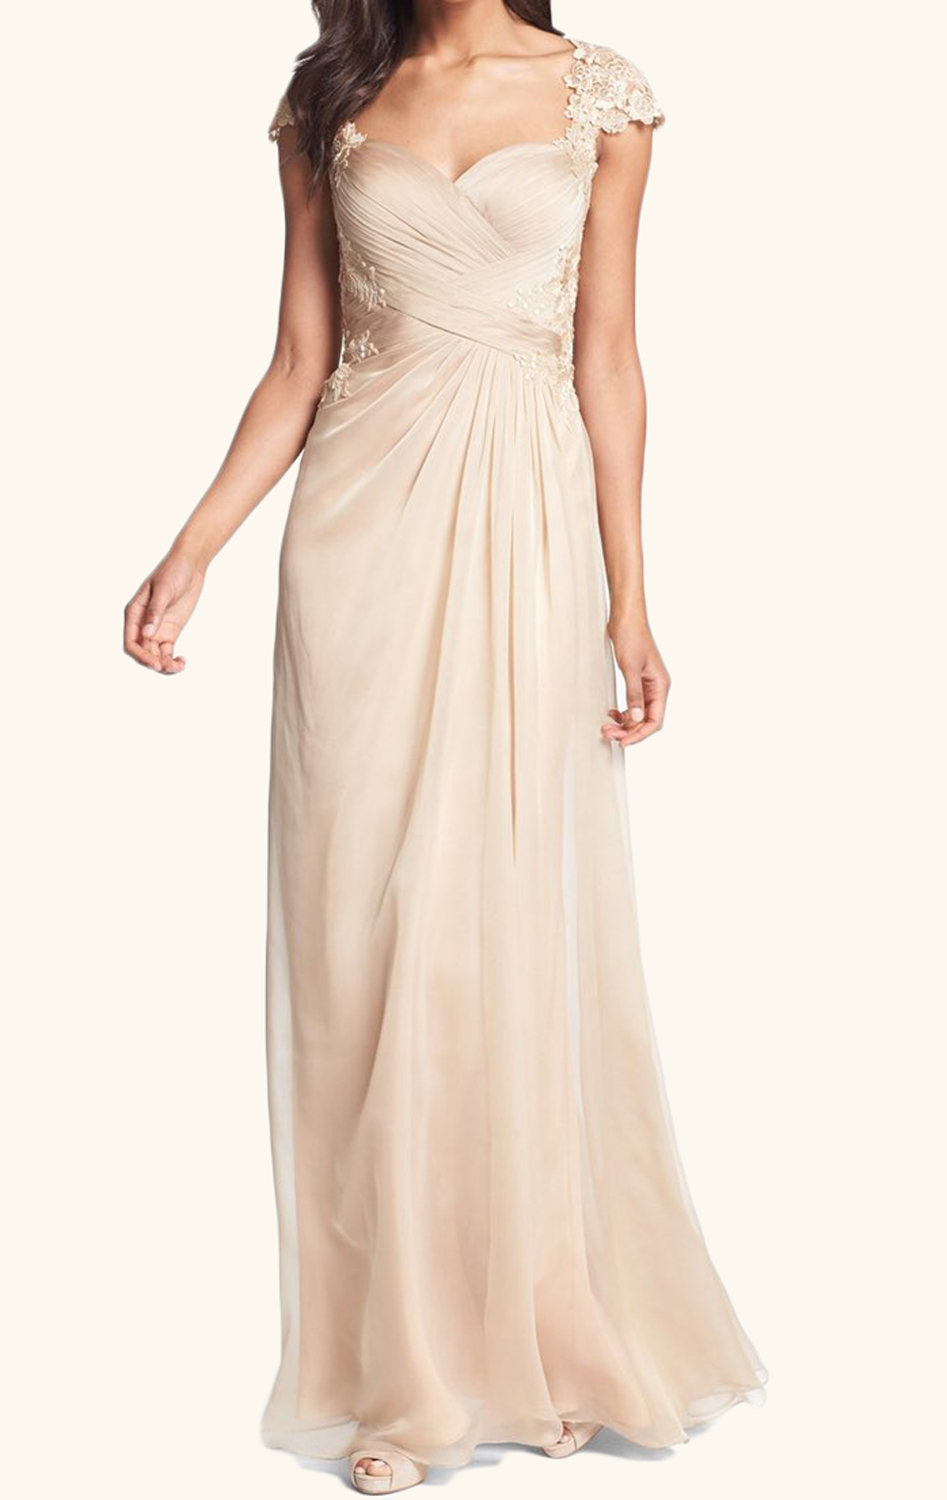 561a27bf8522 MACloth Cap Sleeves Lace Chiffon Long Mother of the Brides Dress Champagne  Wedding Party Formal Gown